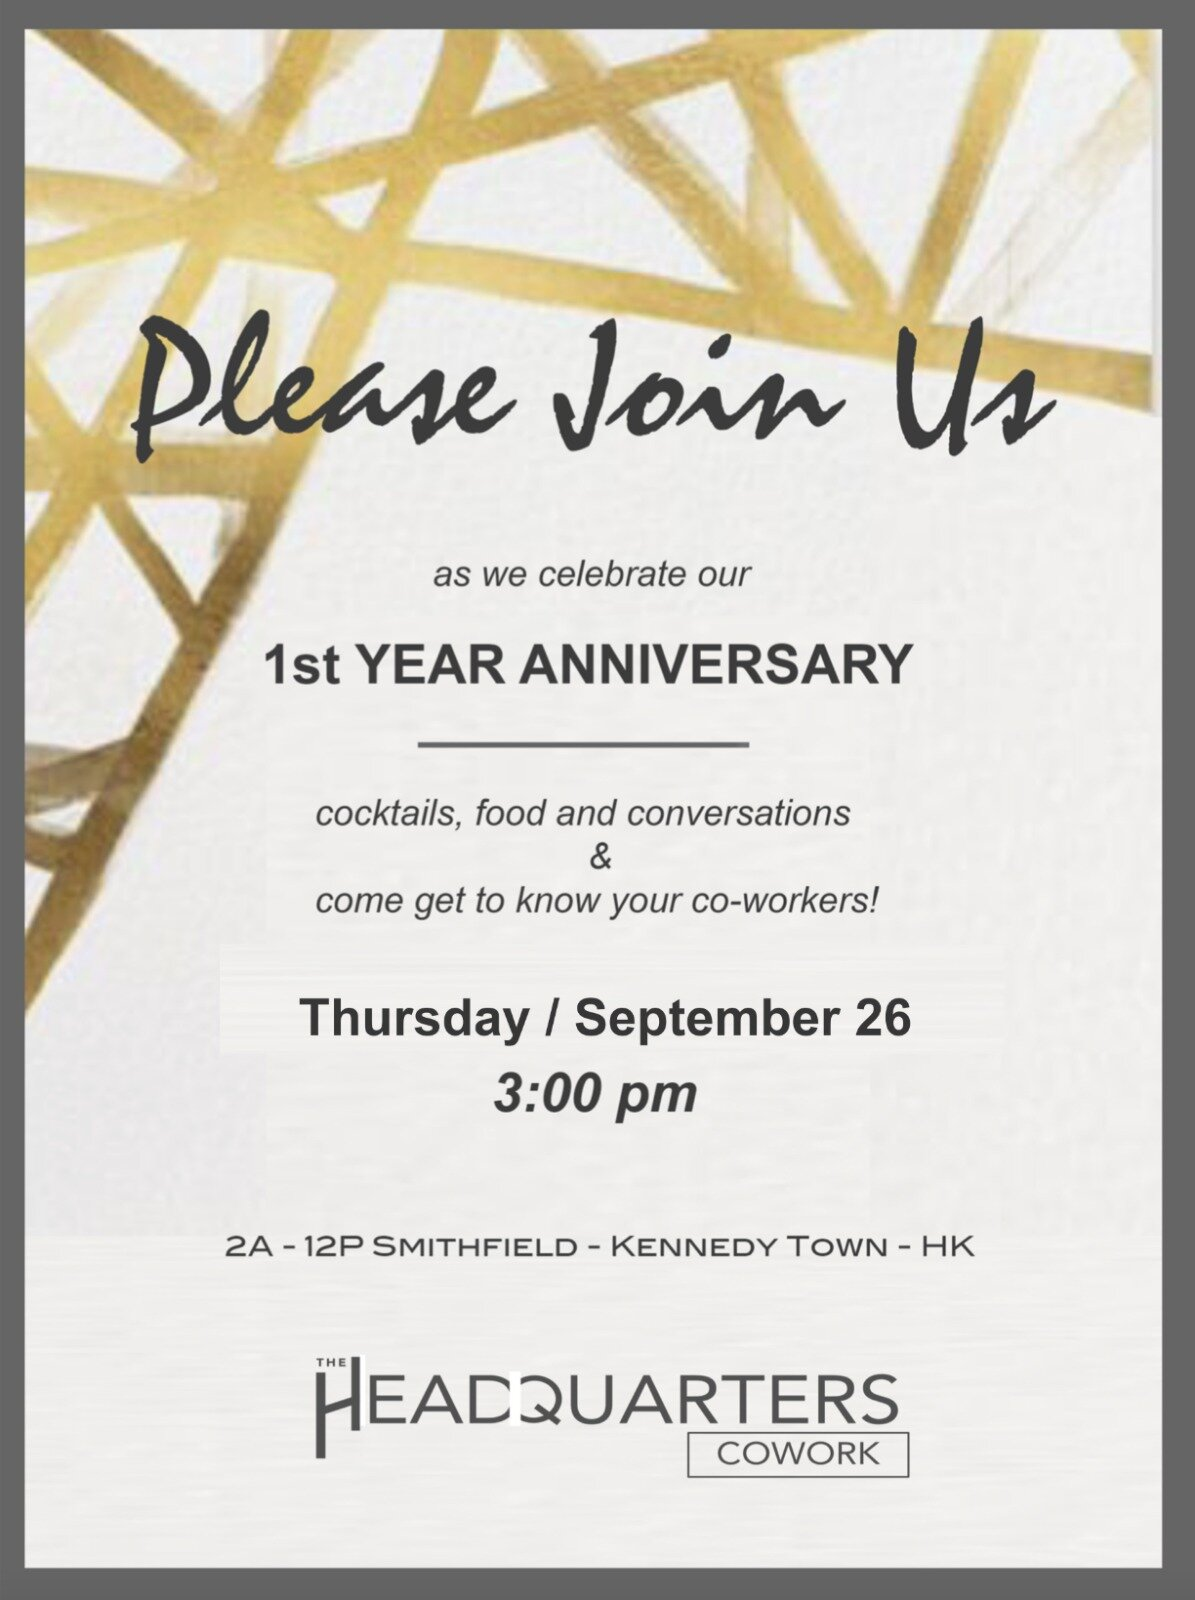 The HQ Cowork 1st year anniversary party - Thu 26/09/2019 3:00pm